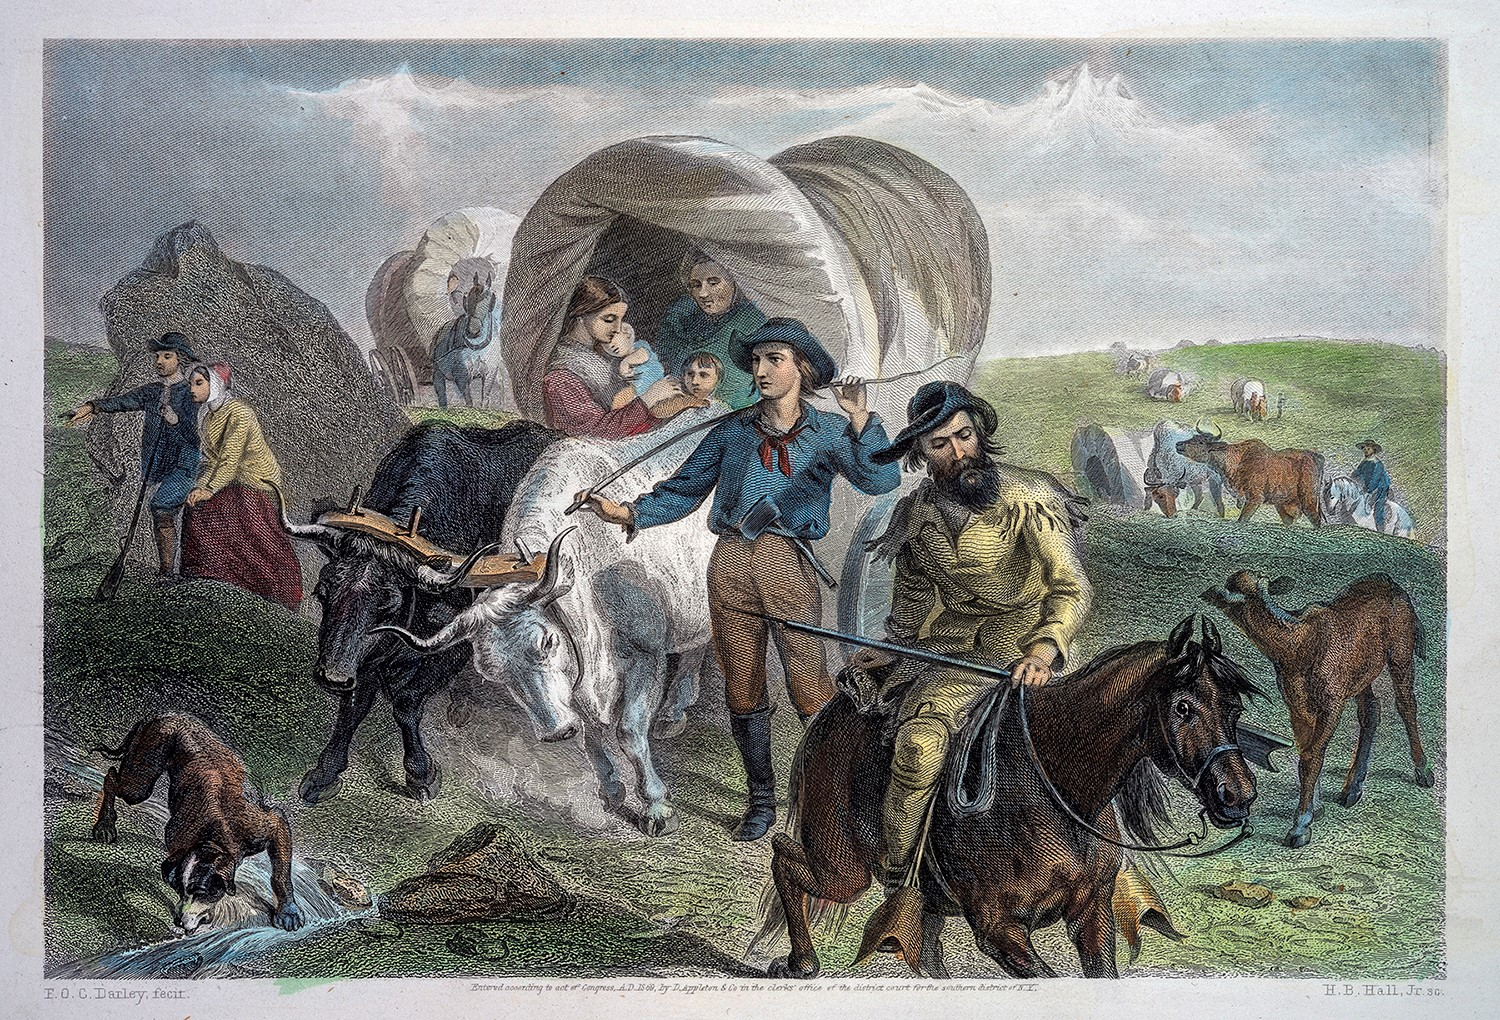 F.O.C. Darley (1822-1888) - Emigrants Crossing the Plains, 1869, color engraving_1440105604779.jpg